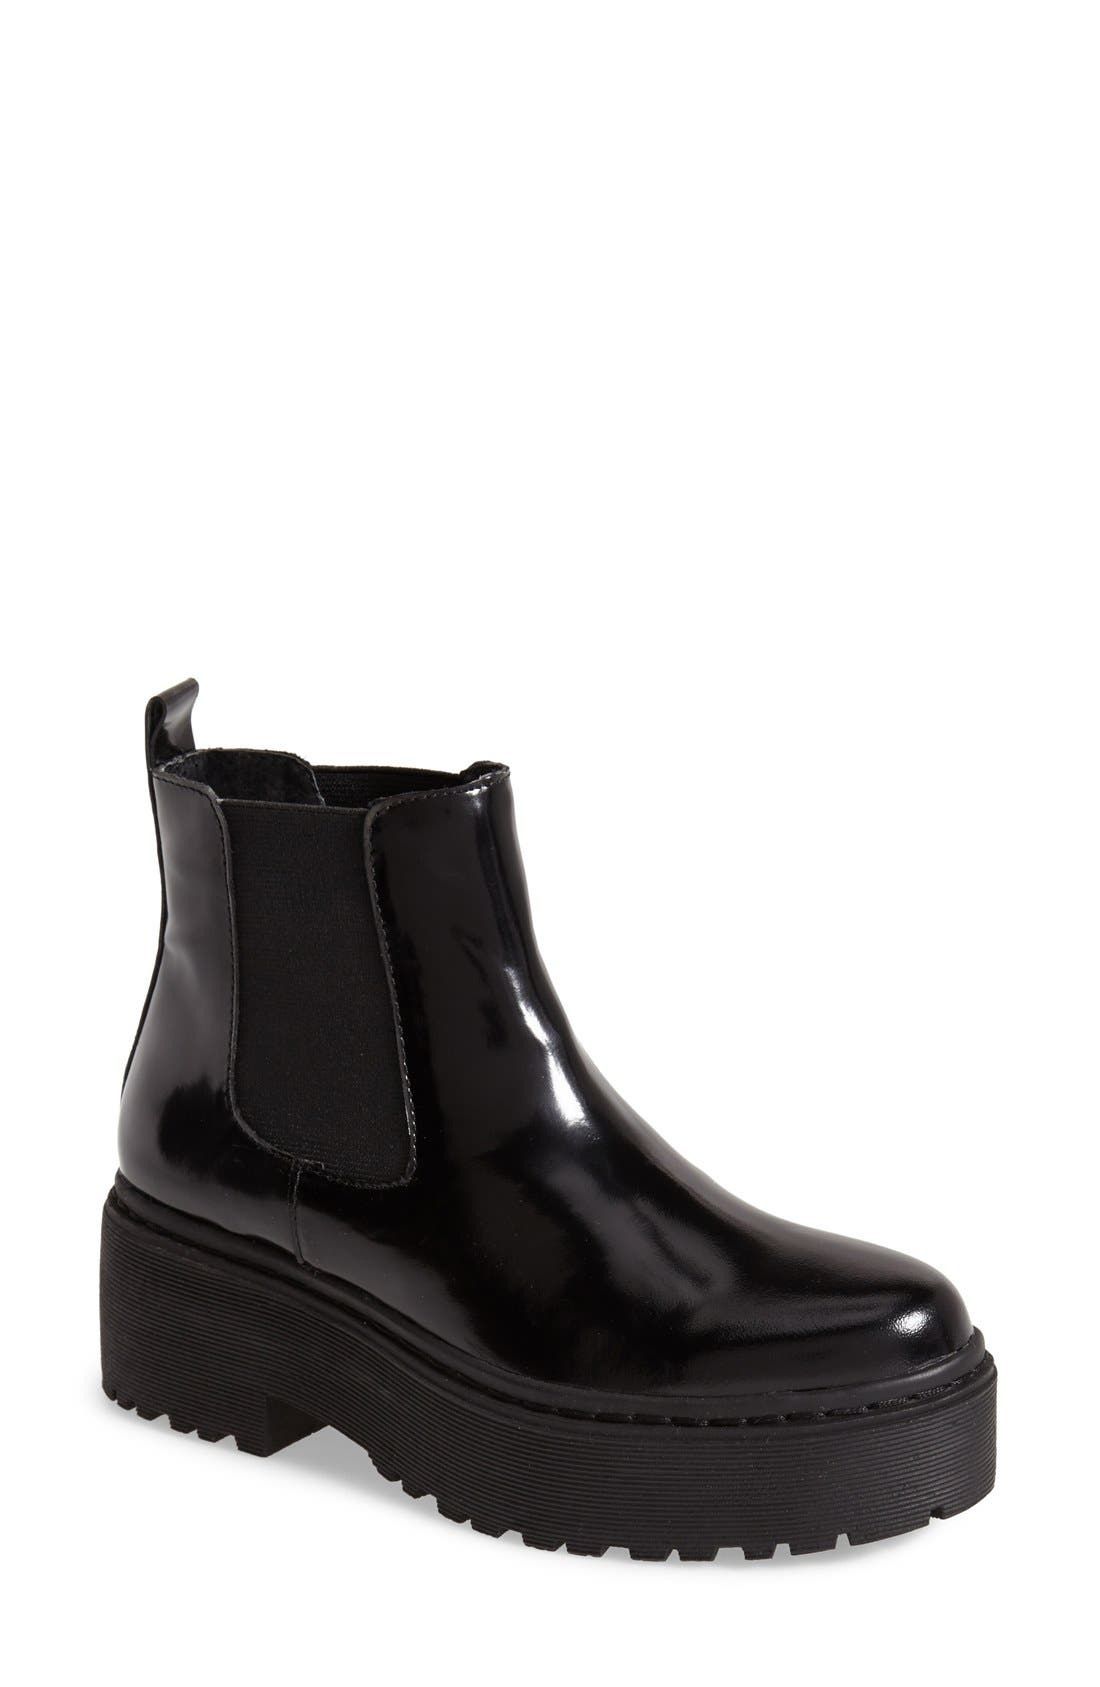 Alternate Image 1 Selected - Jeffrey Campbell 'Universal' Chelsea Boot (Women)